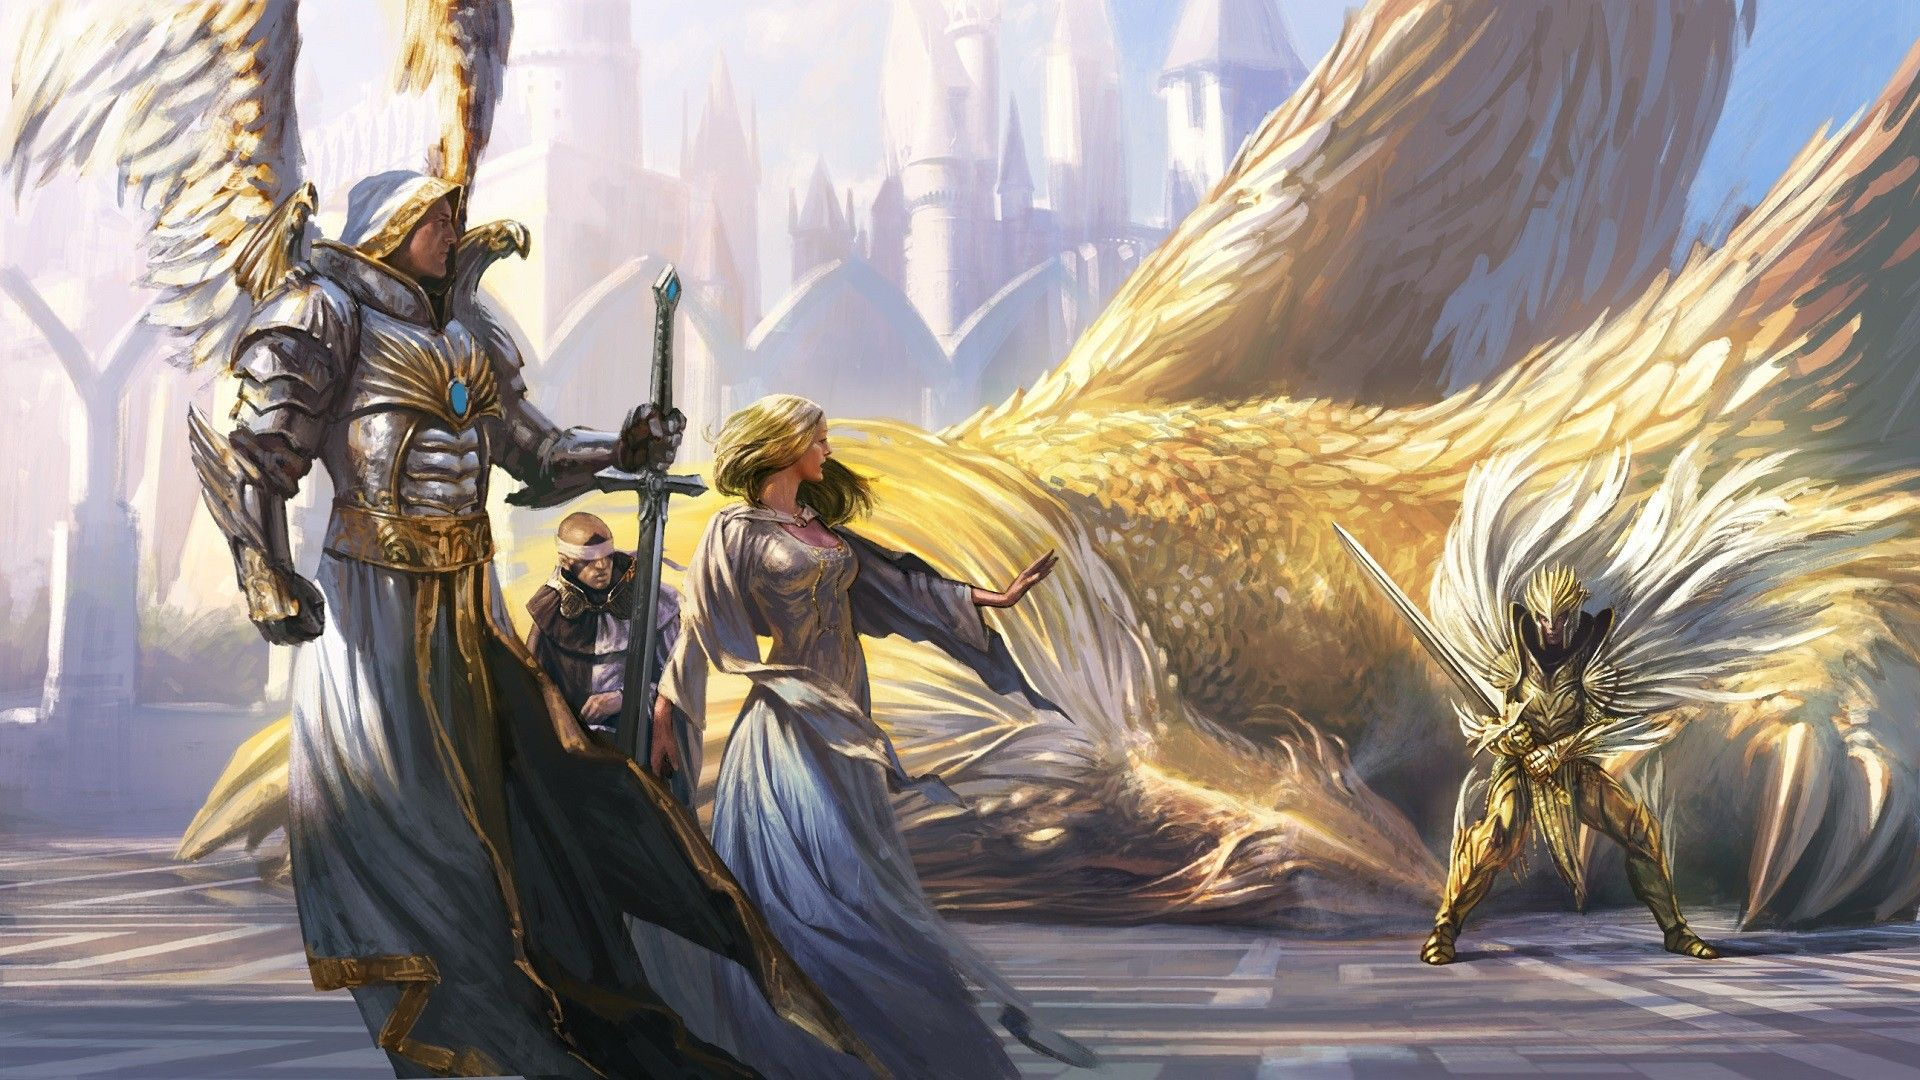 General 1920x1080 Might And Magic Heroes Of Fantasy Art Angel Wings Armor Sword